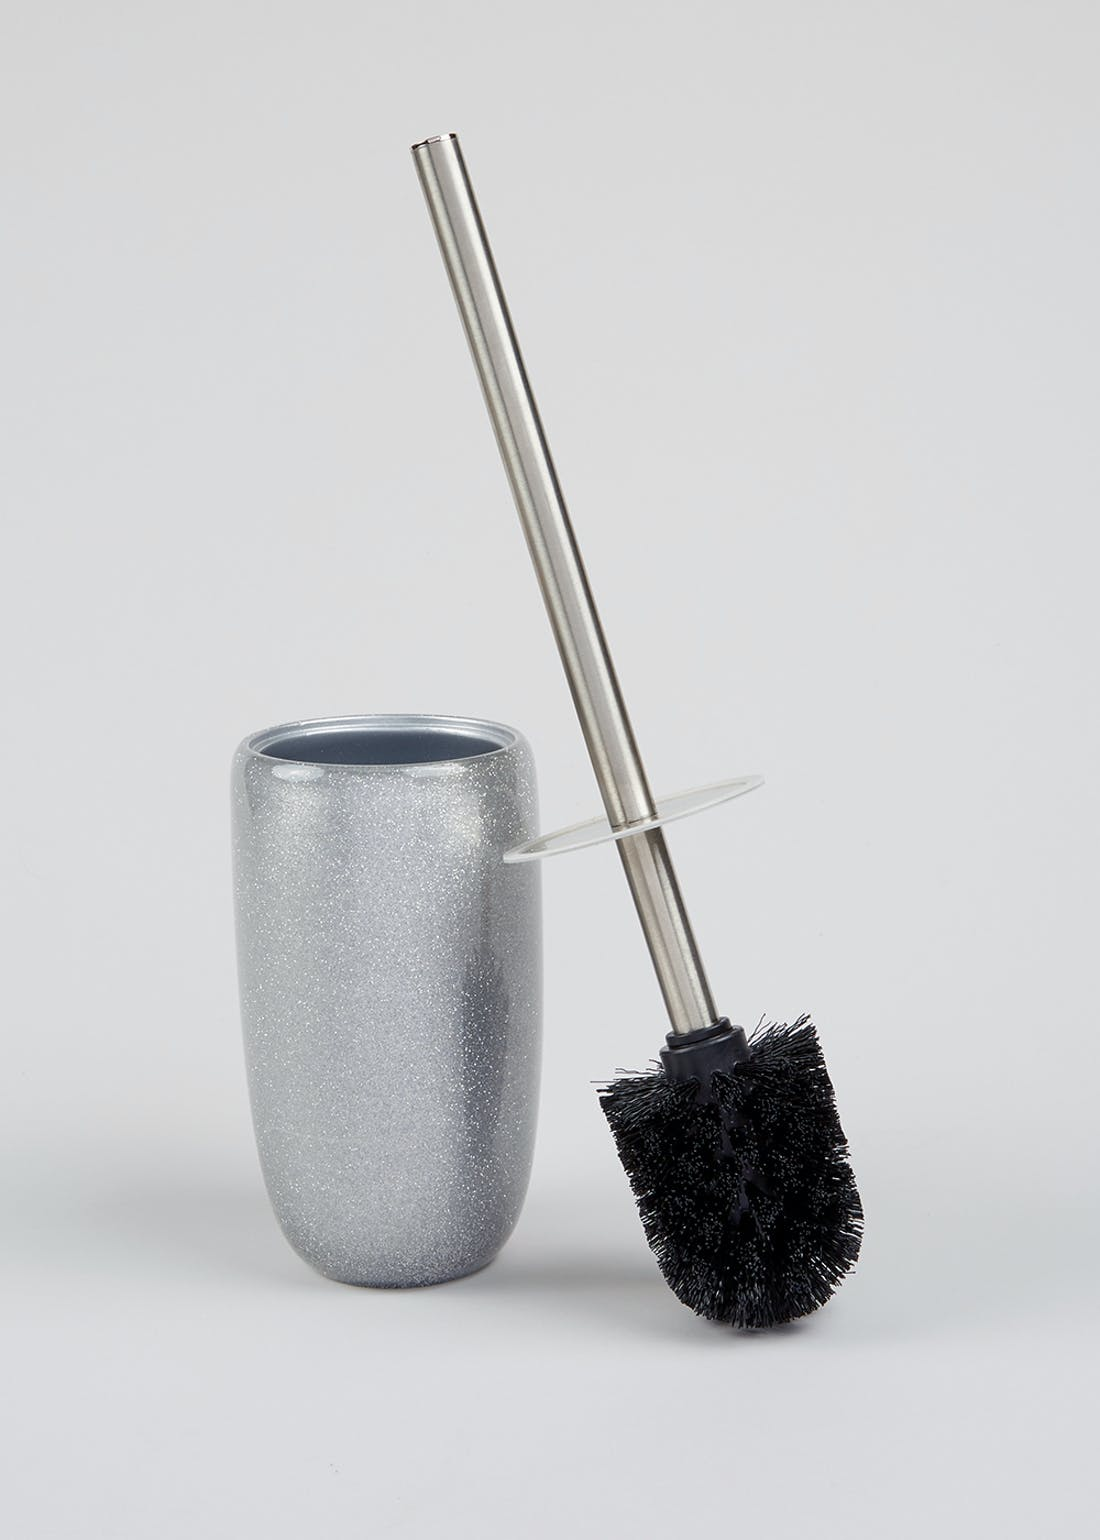 Sparkle Toilet Brush (40cm x 10cm x 10cm)